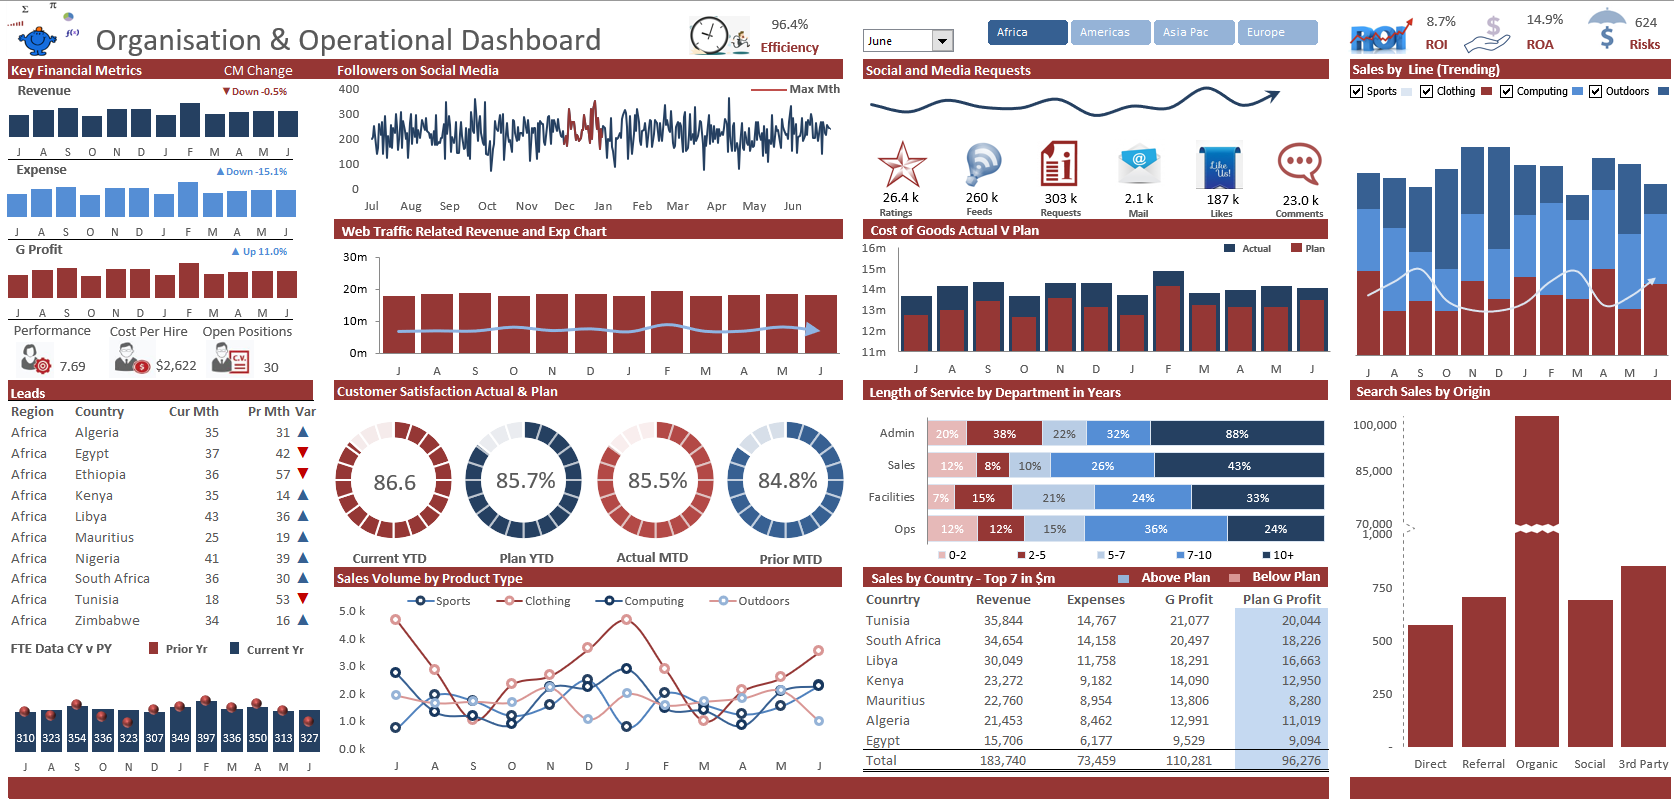 Whole of Organisation Dashboard